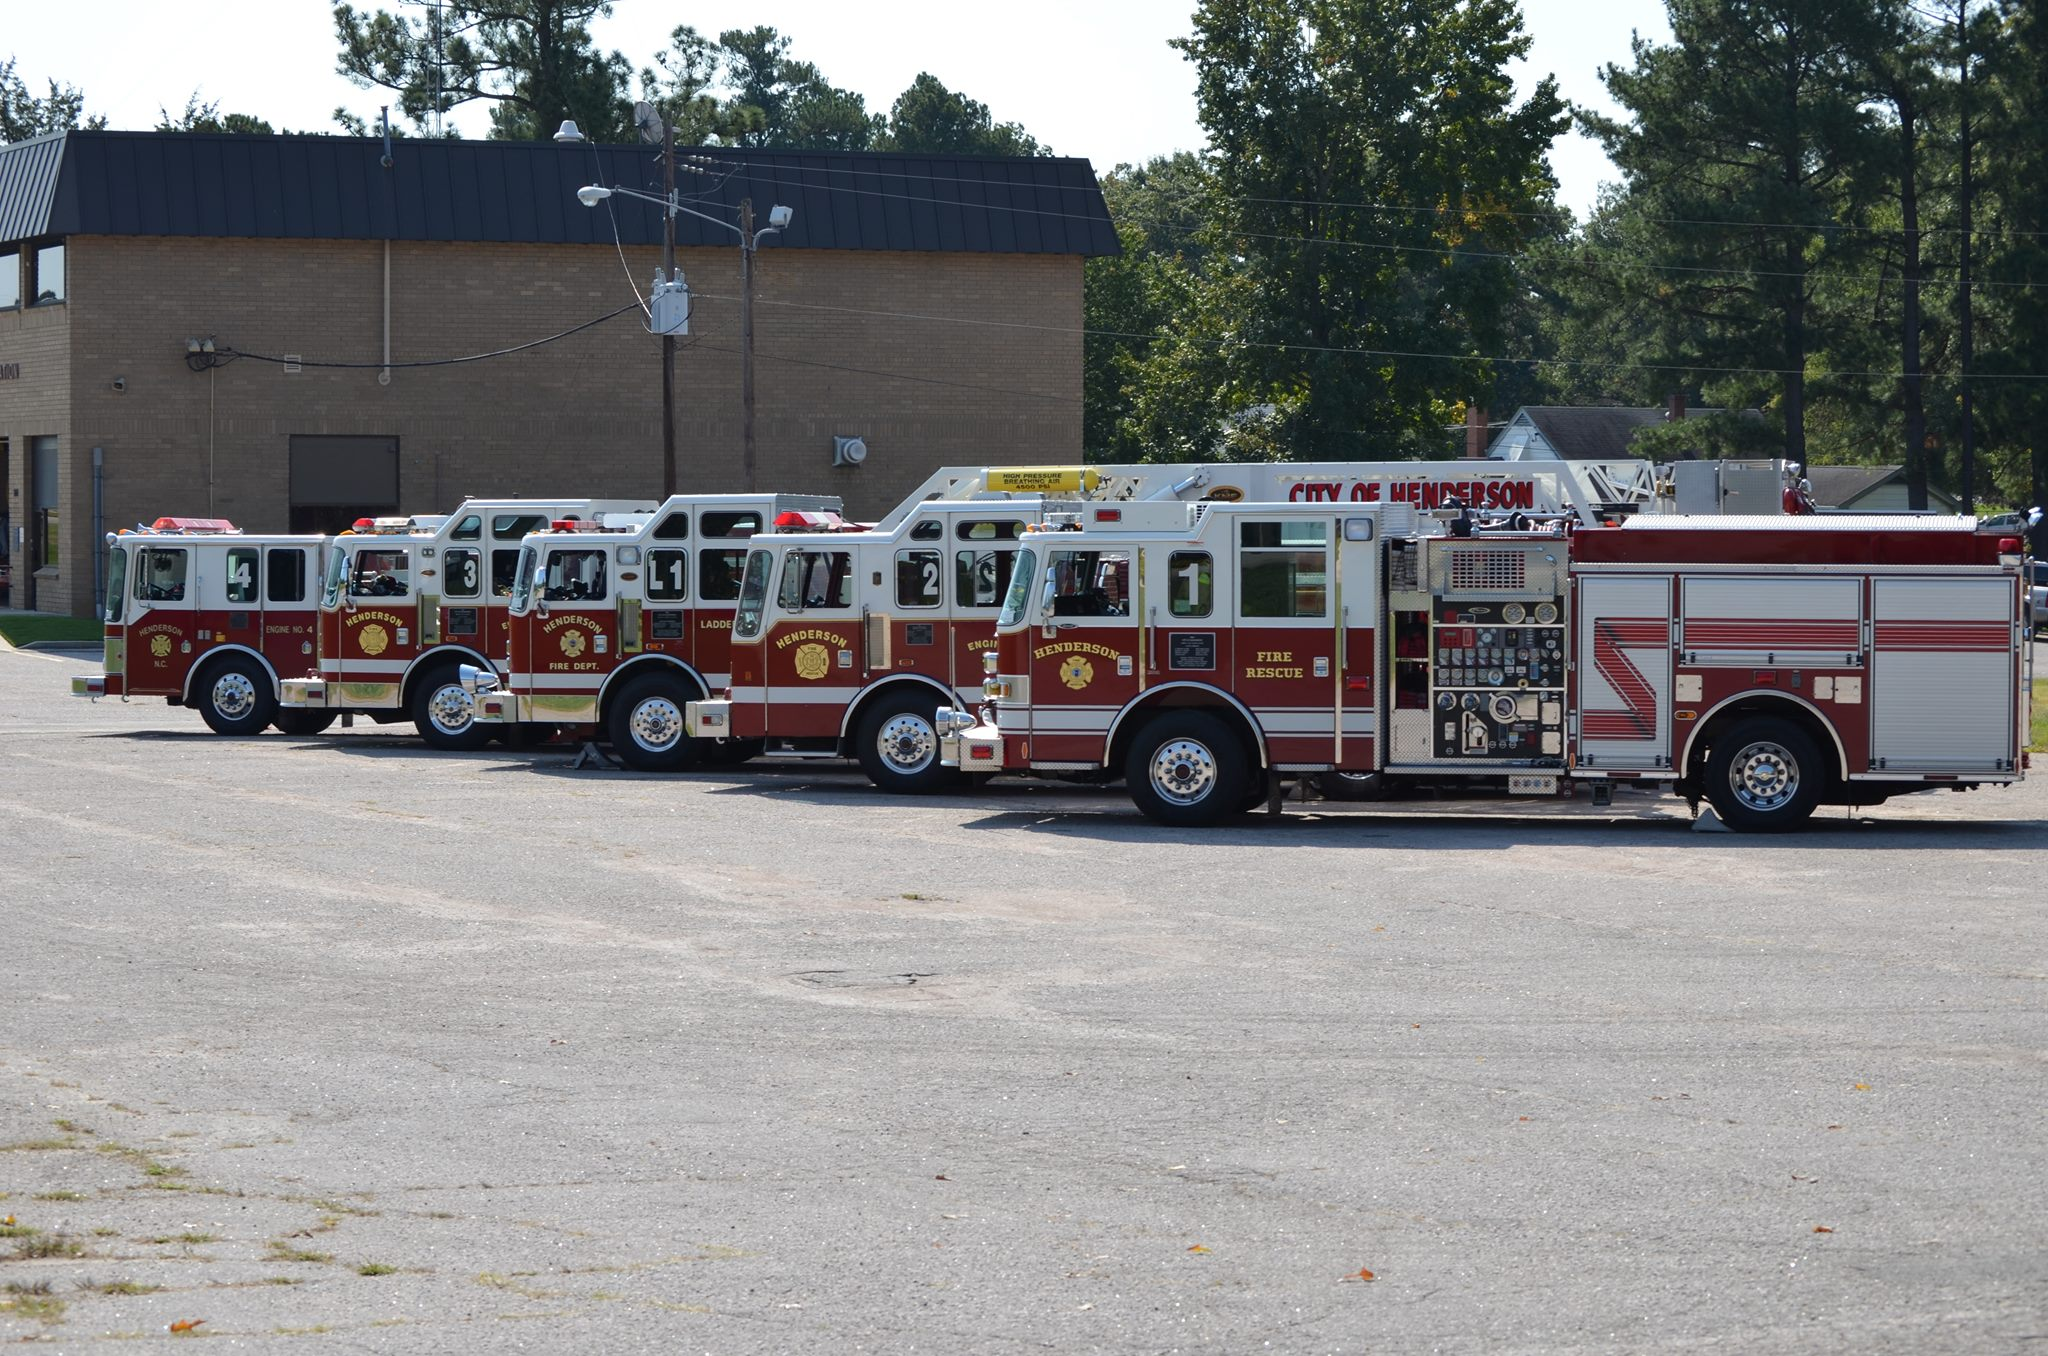 The City of Hendersonville Fire Department engines in a parking lot.